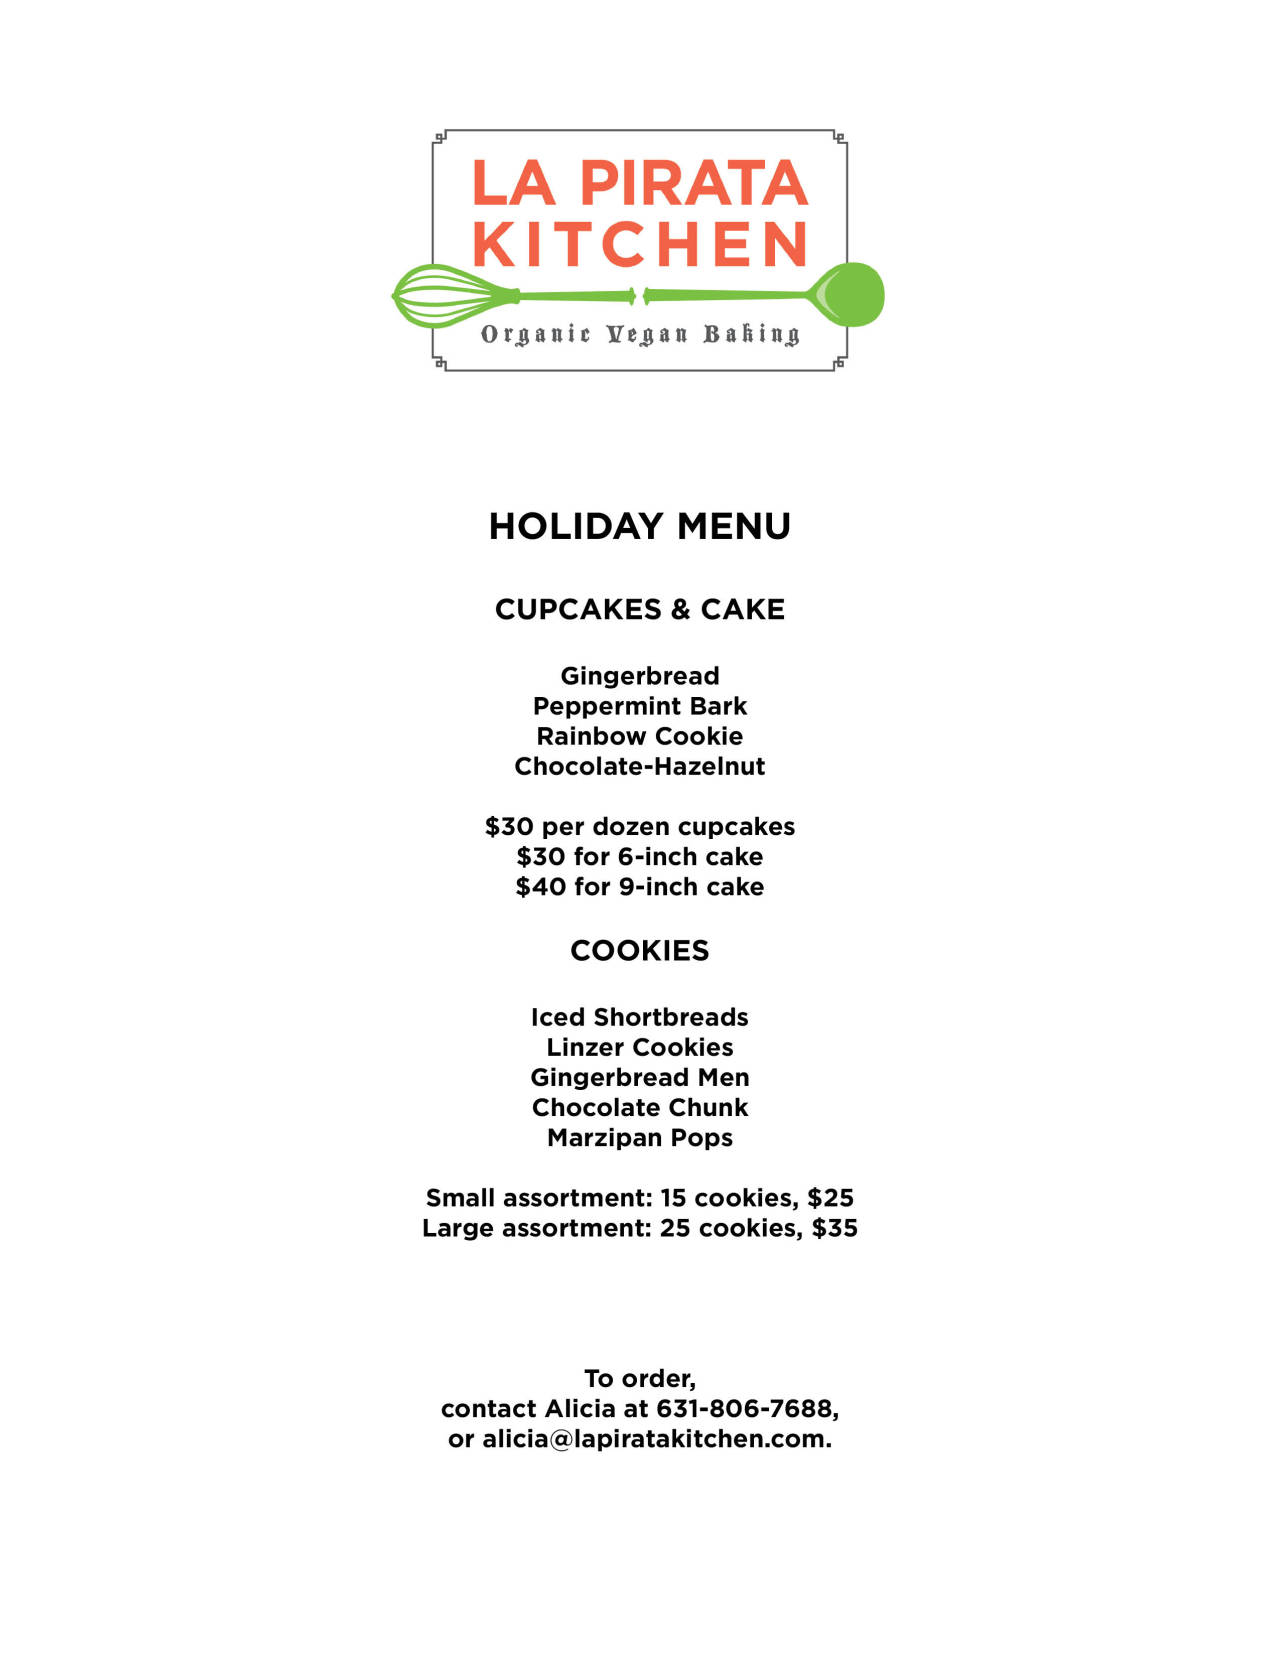 Here's the holiday menu! (Trying to be better with our presence beyond Facebook.)